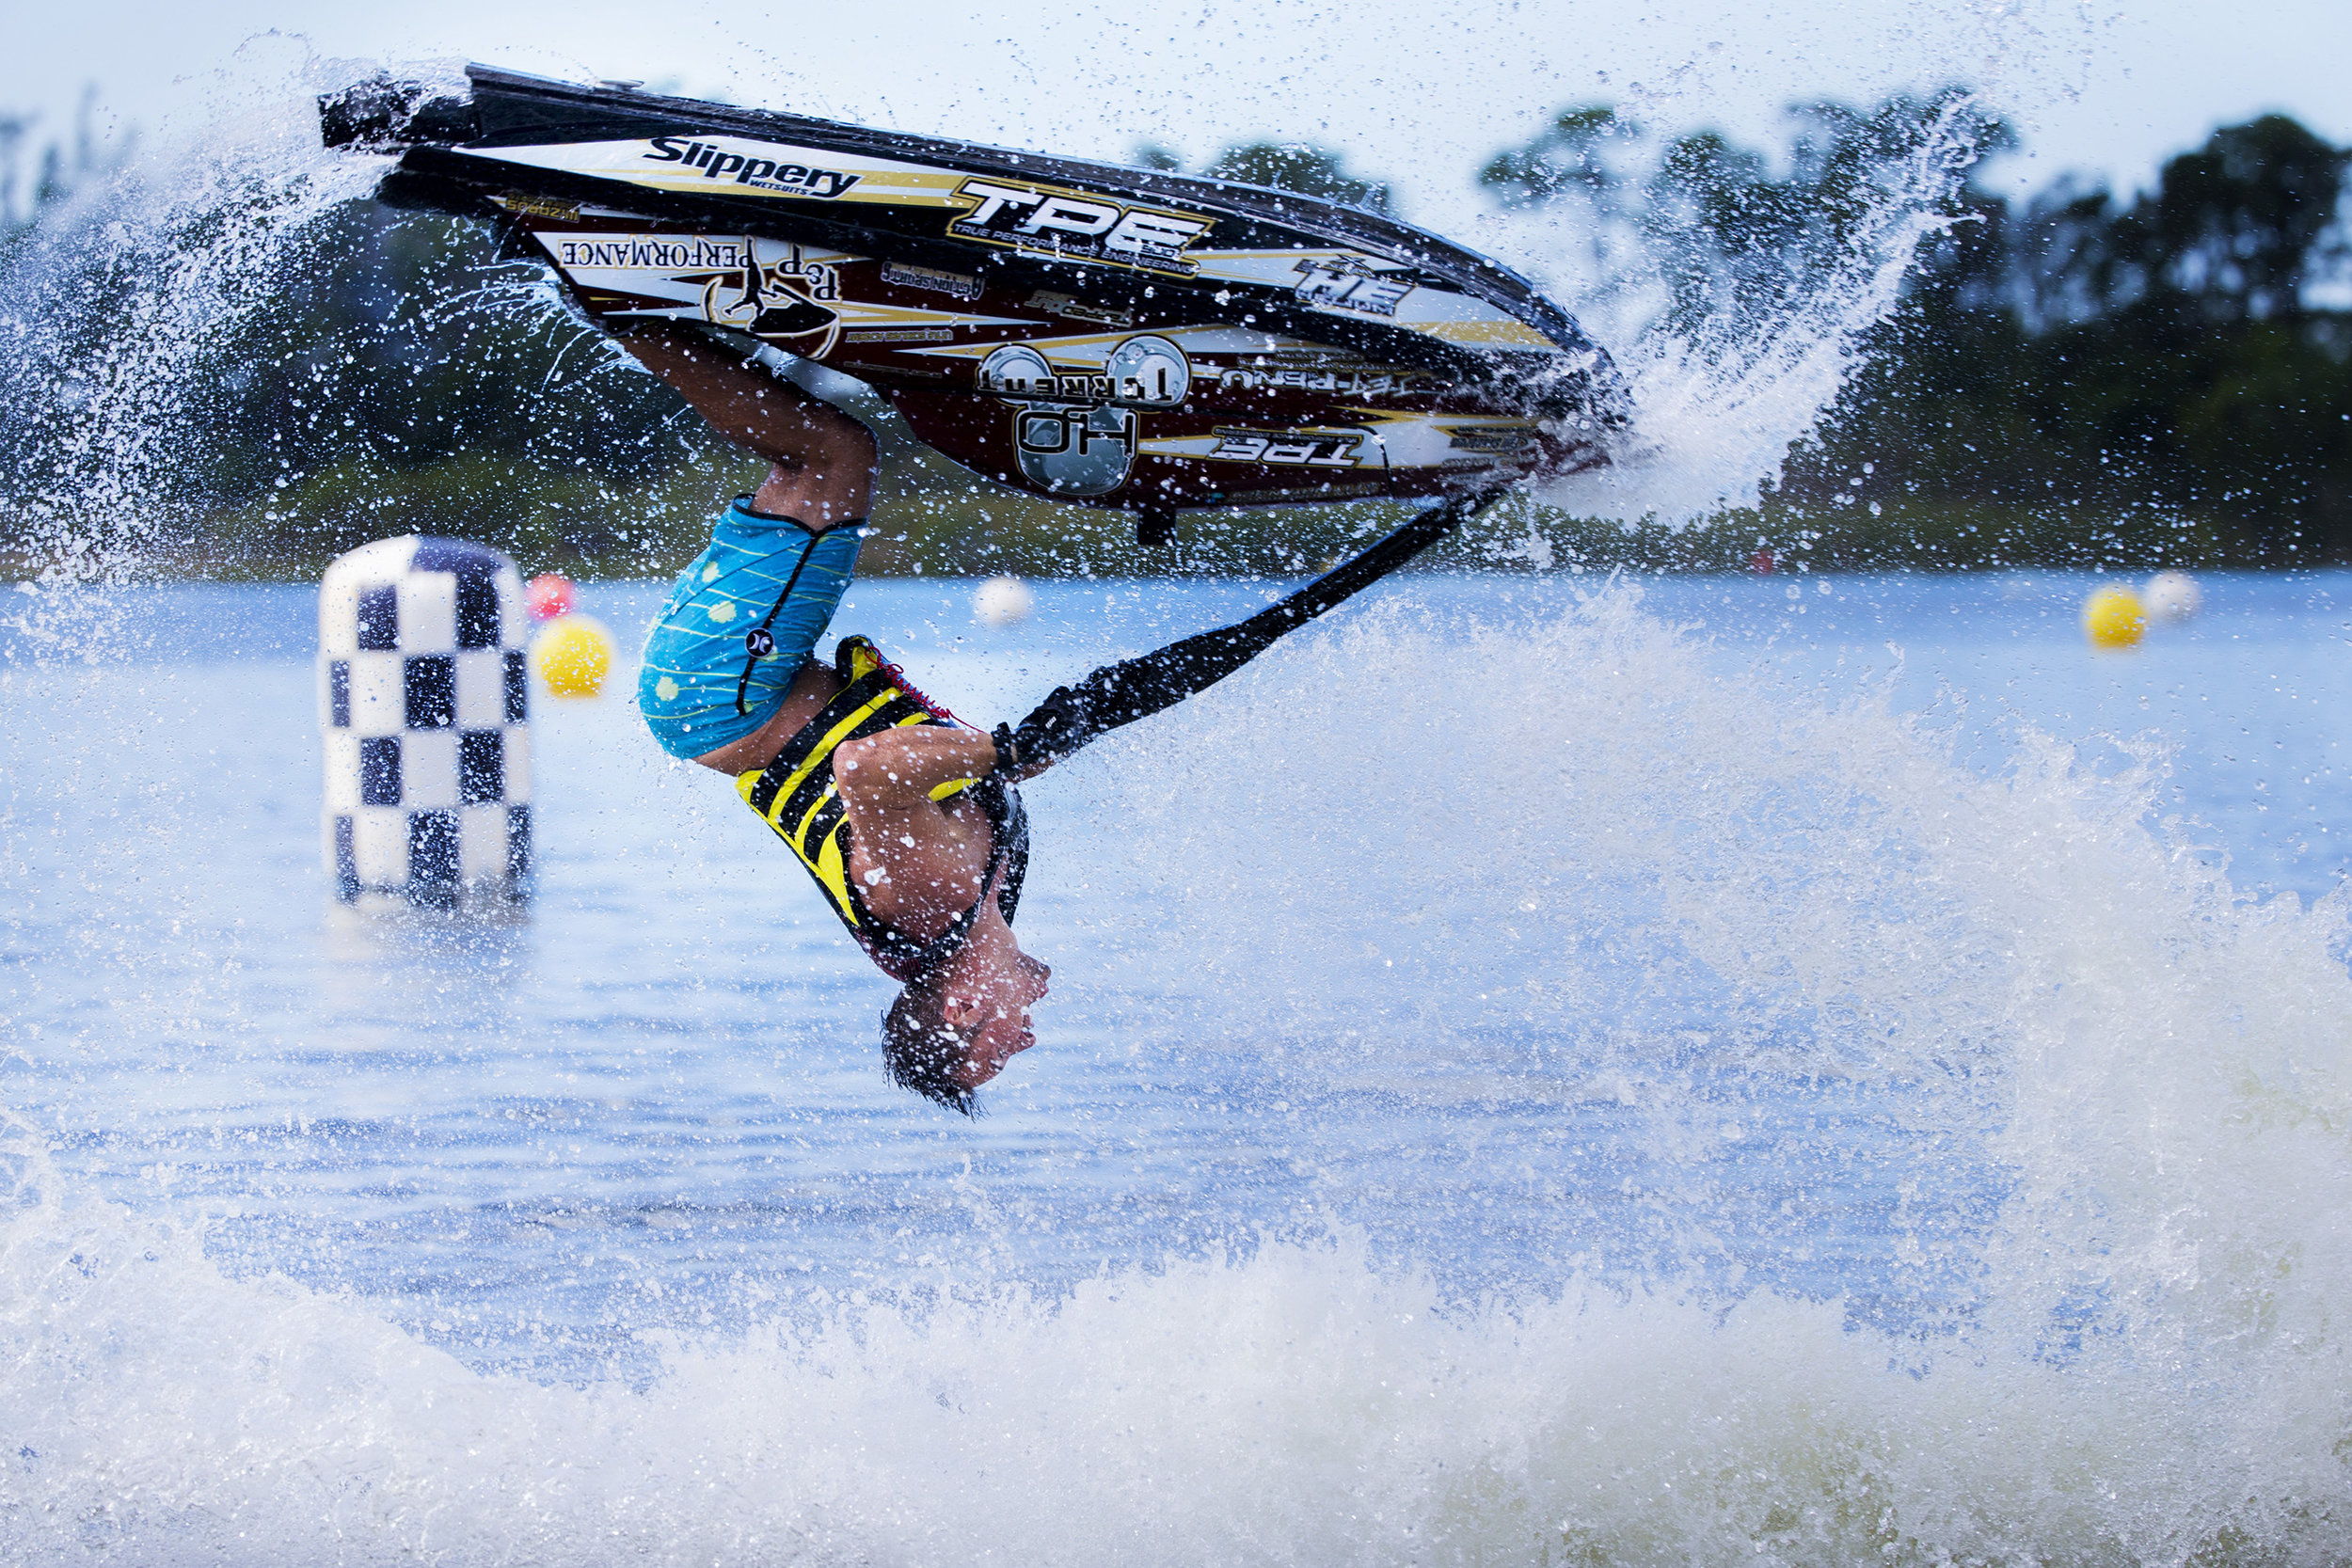 Chris Anyzeski performs a backflip during the Pro Freestyle heat of the Pro Watercross World Championships at Sugden Regional Park in Naples on Sunday, Nov. 5, 2017.